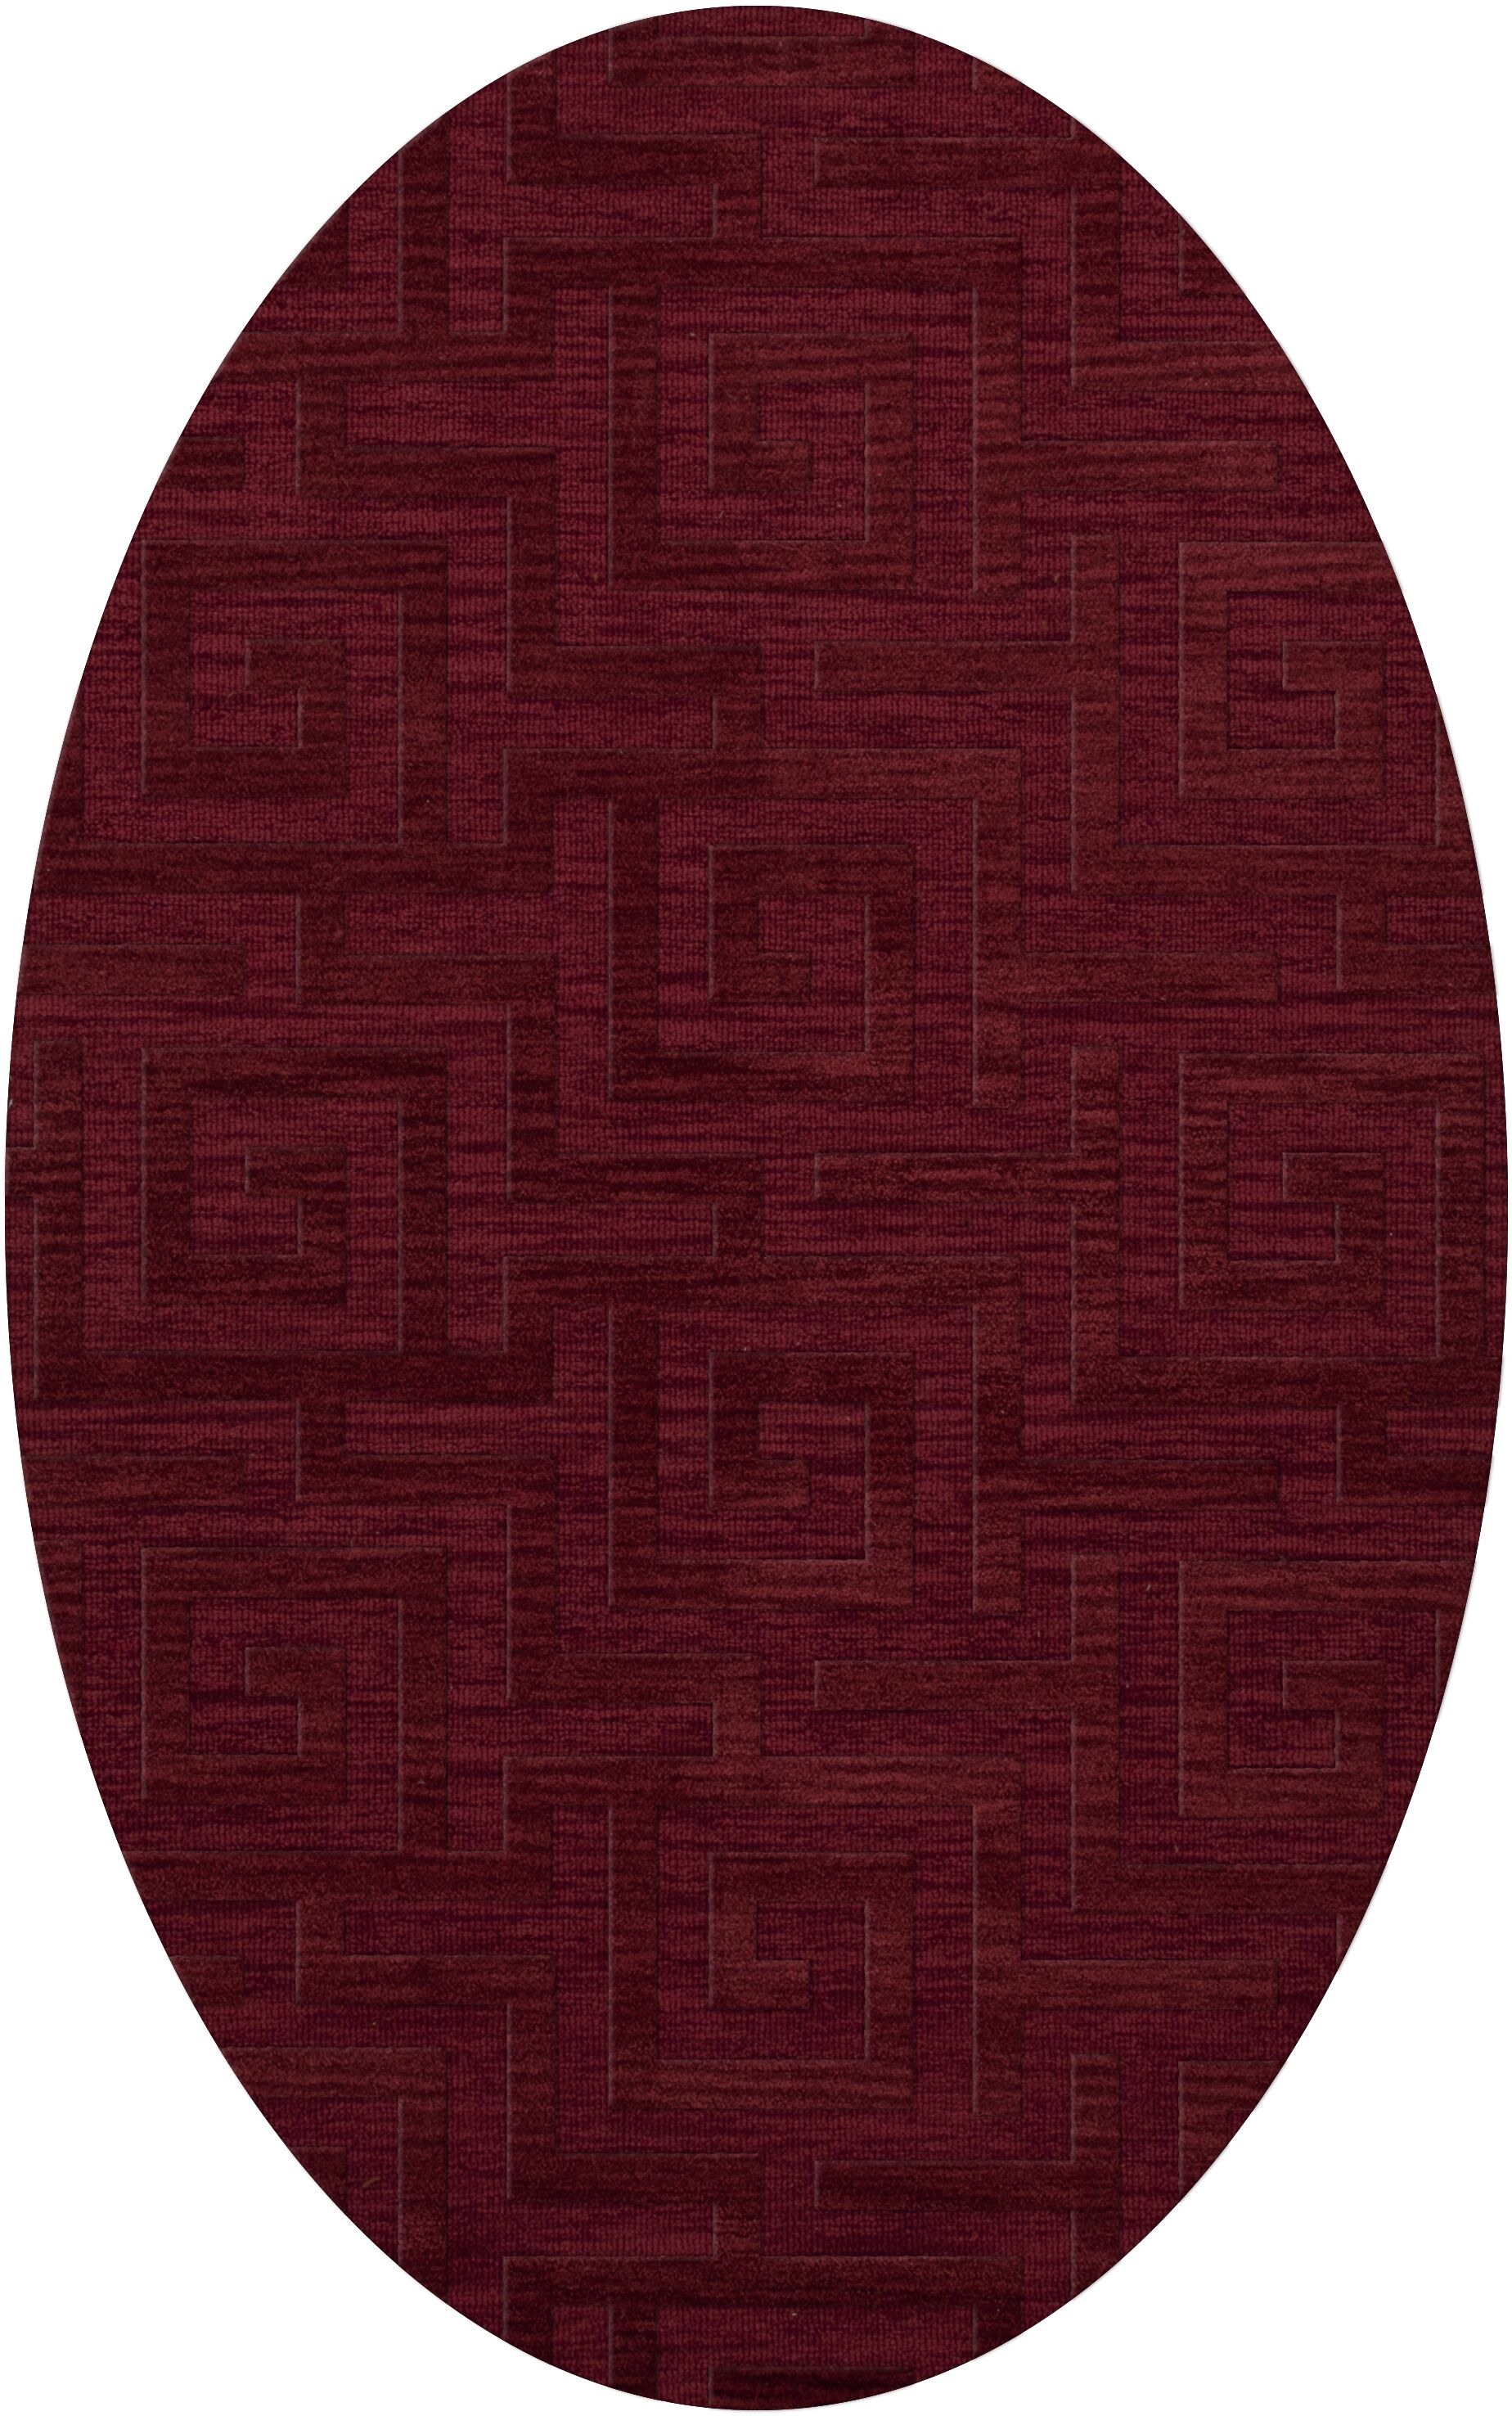 Dover Tufted Wool Rich Red Area Rug Rug Size: Oval 4' x 6'